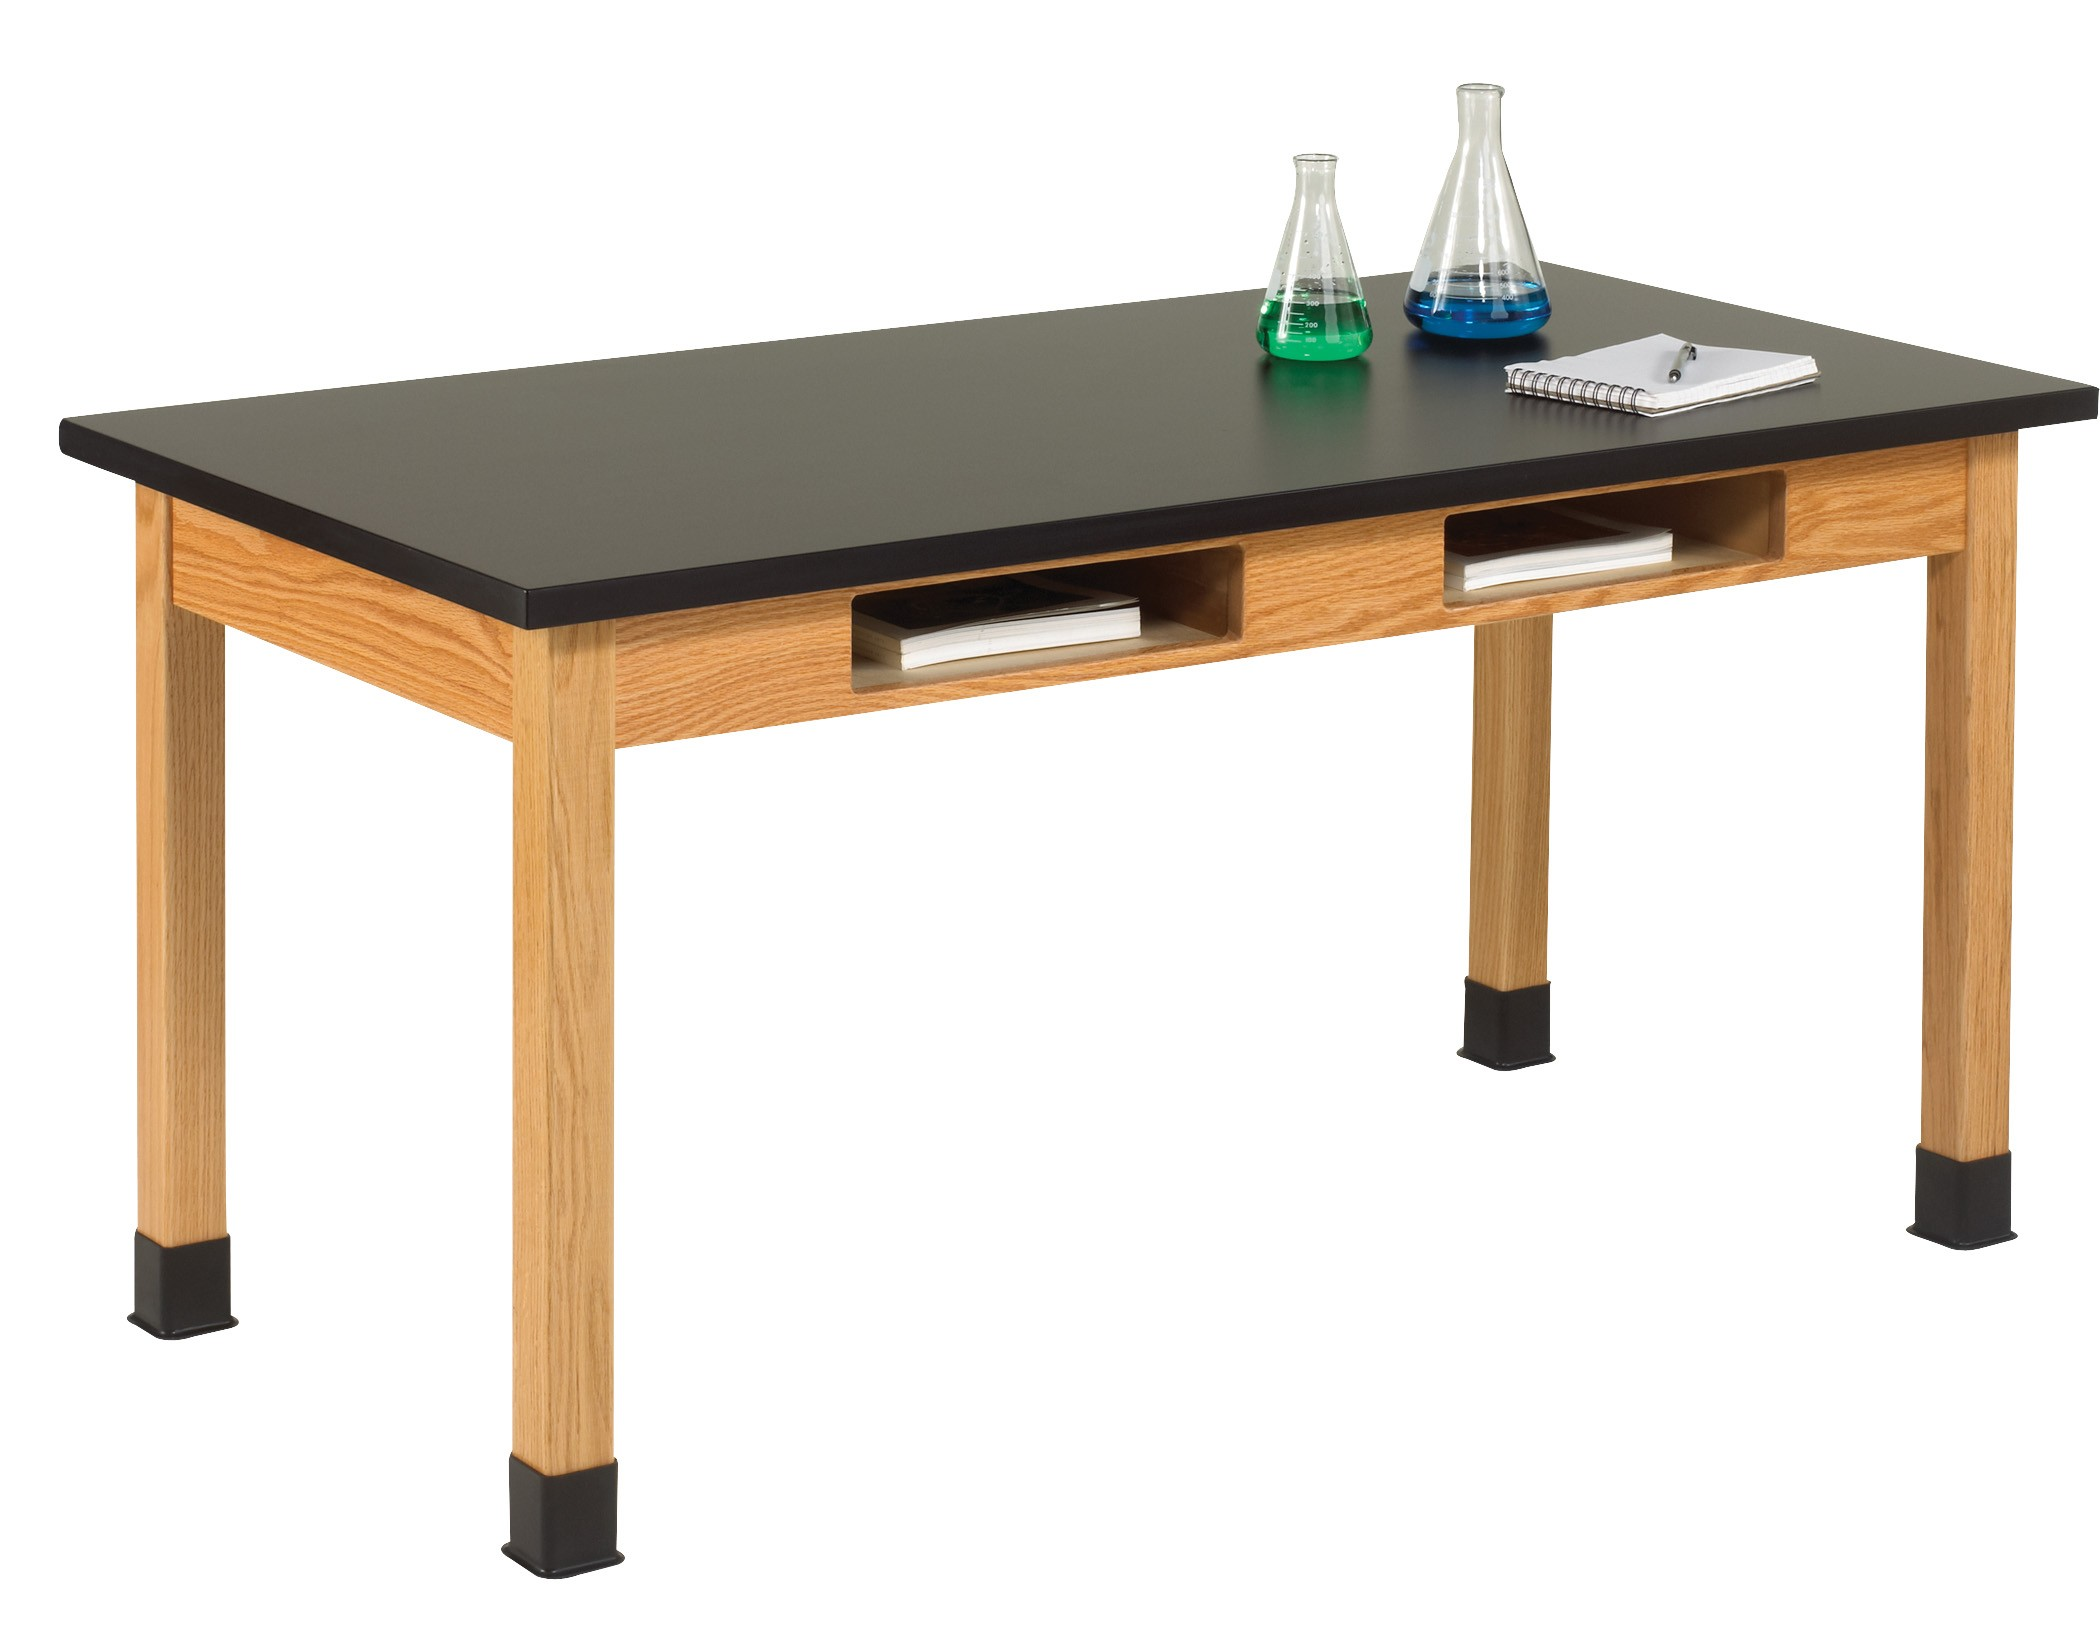 Uv Finish Solid Oak Wood Table With Book Compartment 60 W 3 Top Types